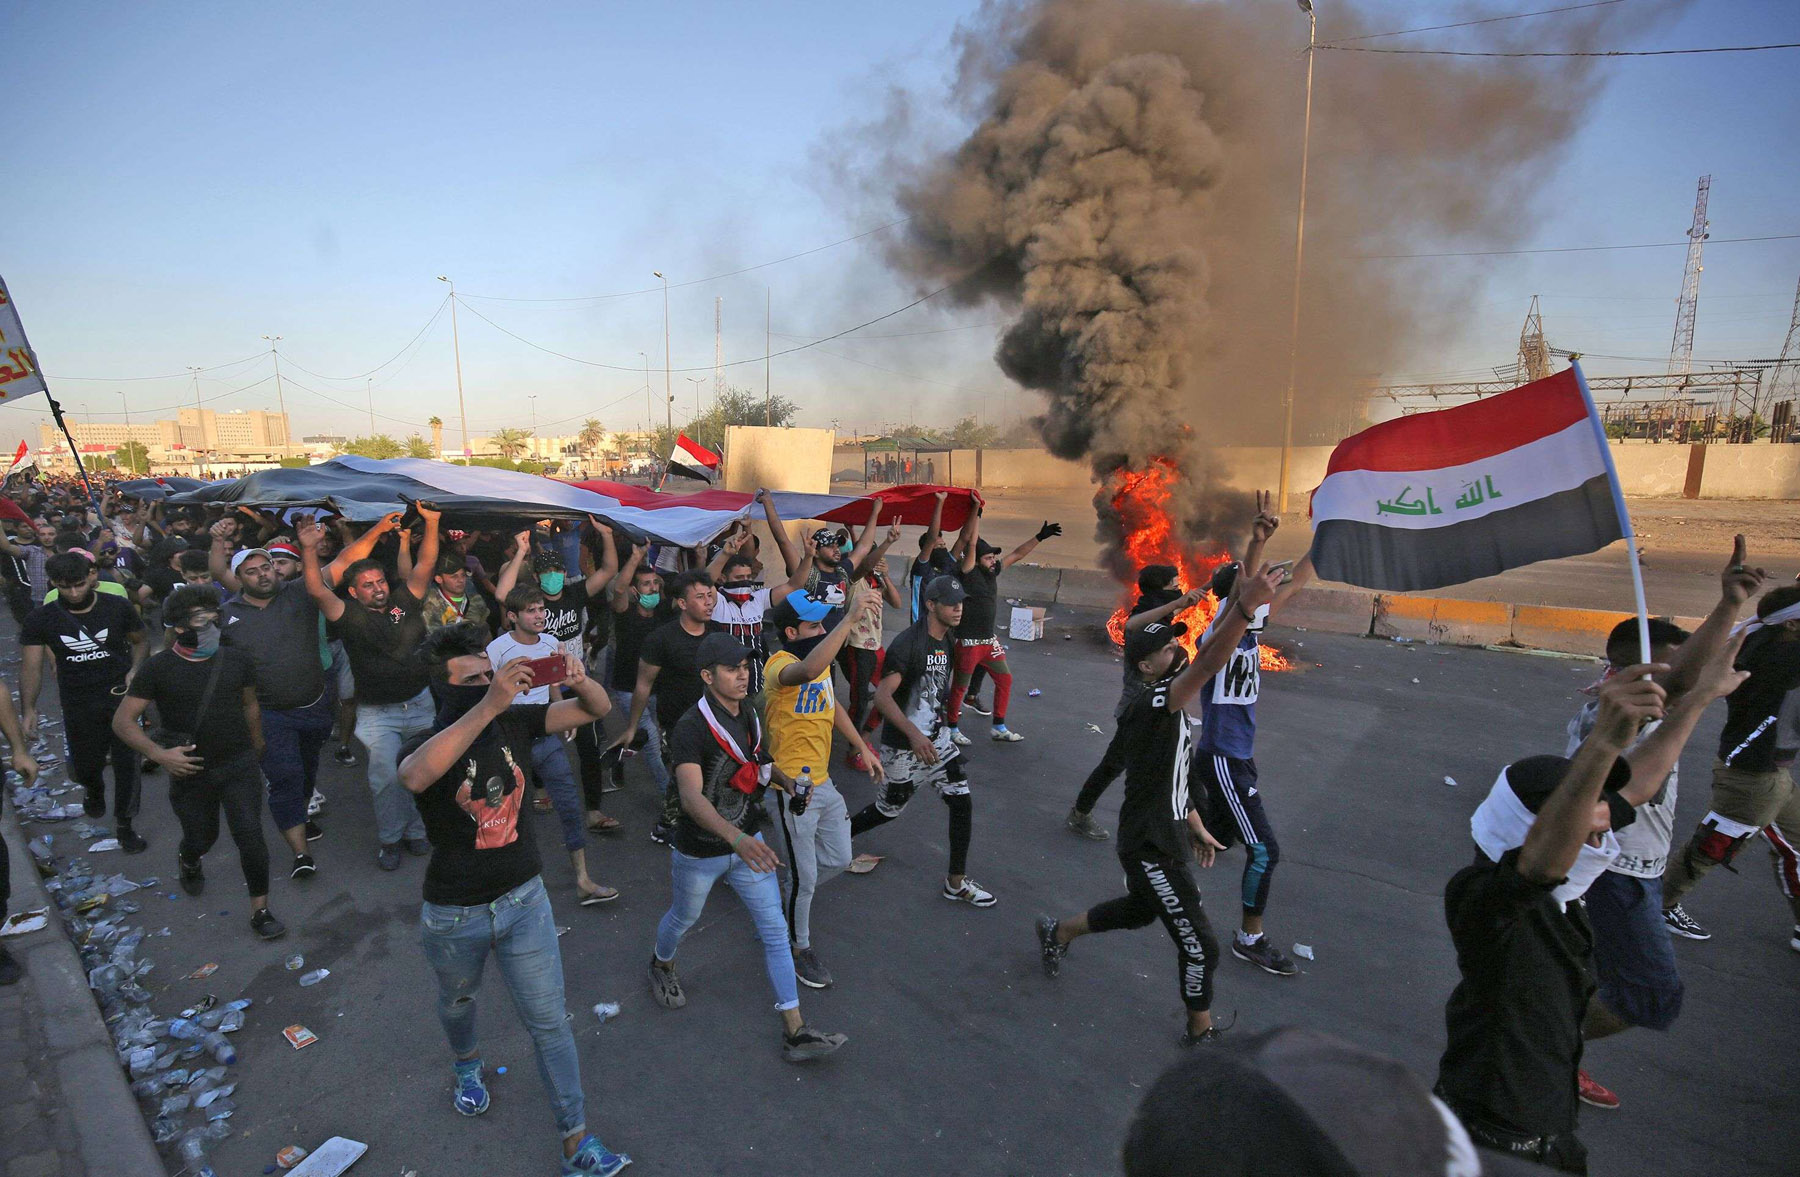 Iraqi protesters take part in a demonstration against state corruption, failing public services, and unemployment, in the Iraqi capital Baghdad's central Khellani Square on October 4. (AFP)